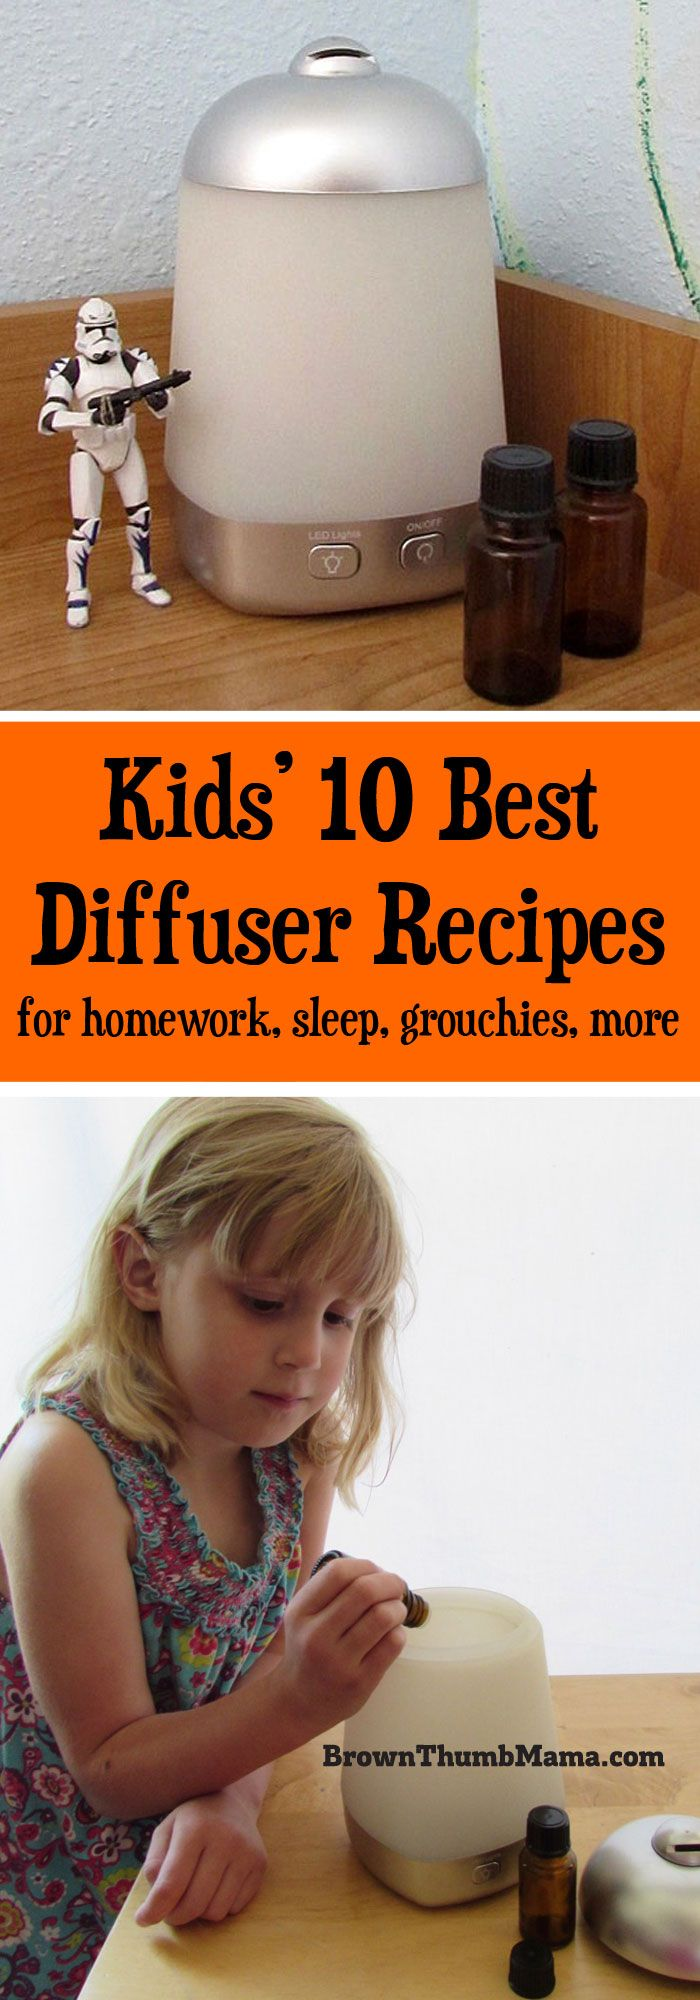 Kids love essential oils! These are the 10 best diffuser recipes for kids. These blends help at homework time, for sleep, grouch-busting, and more.